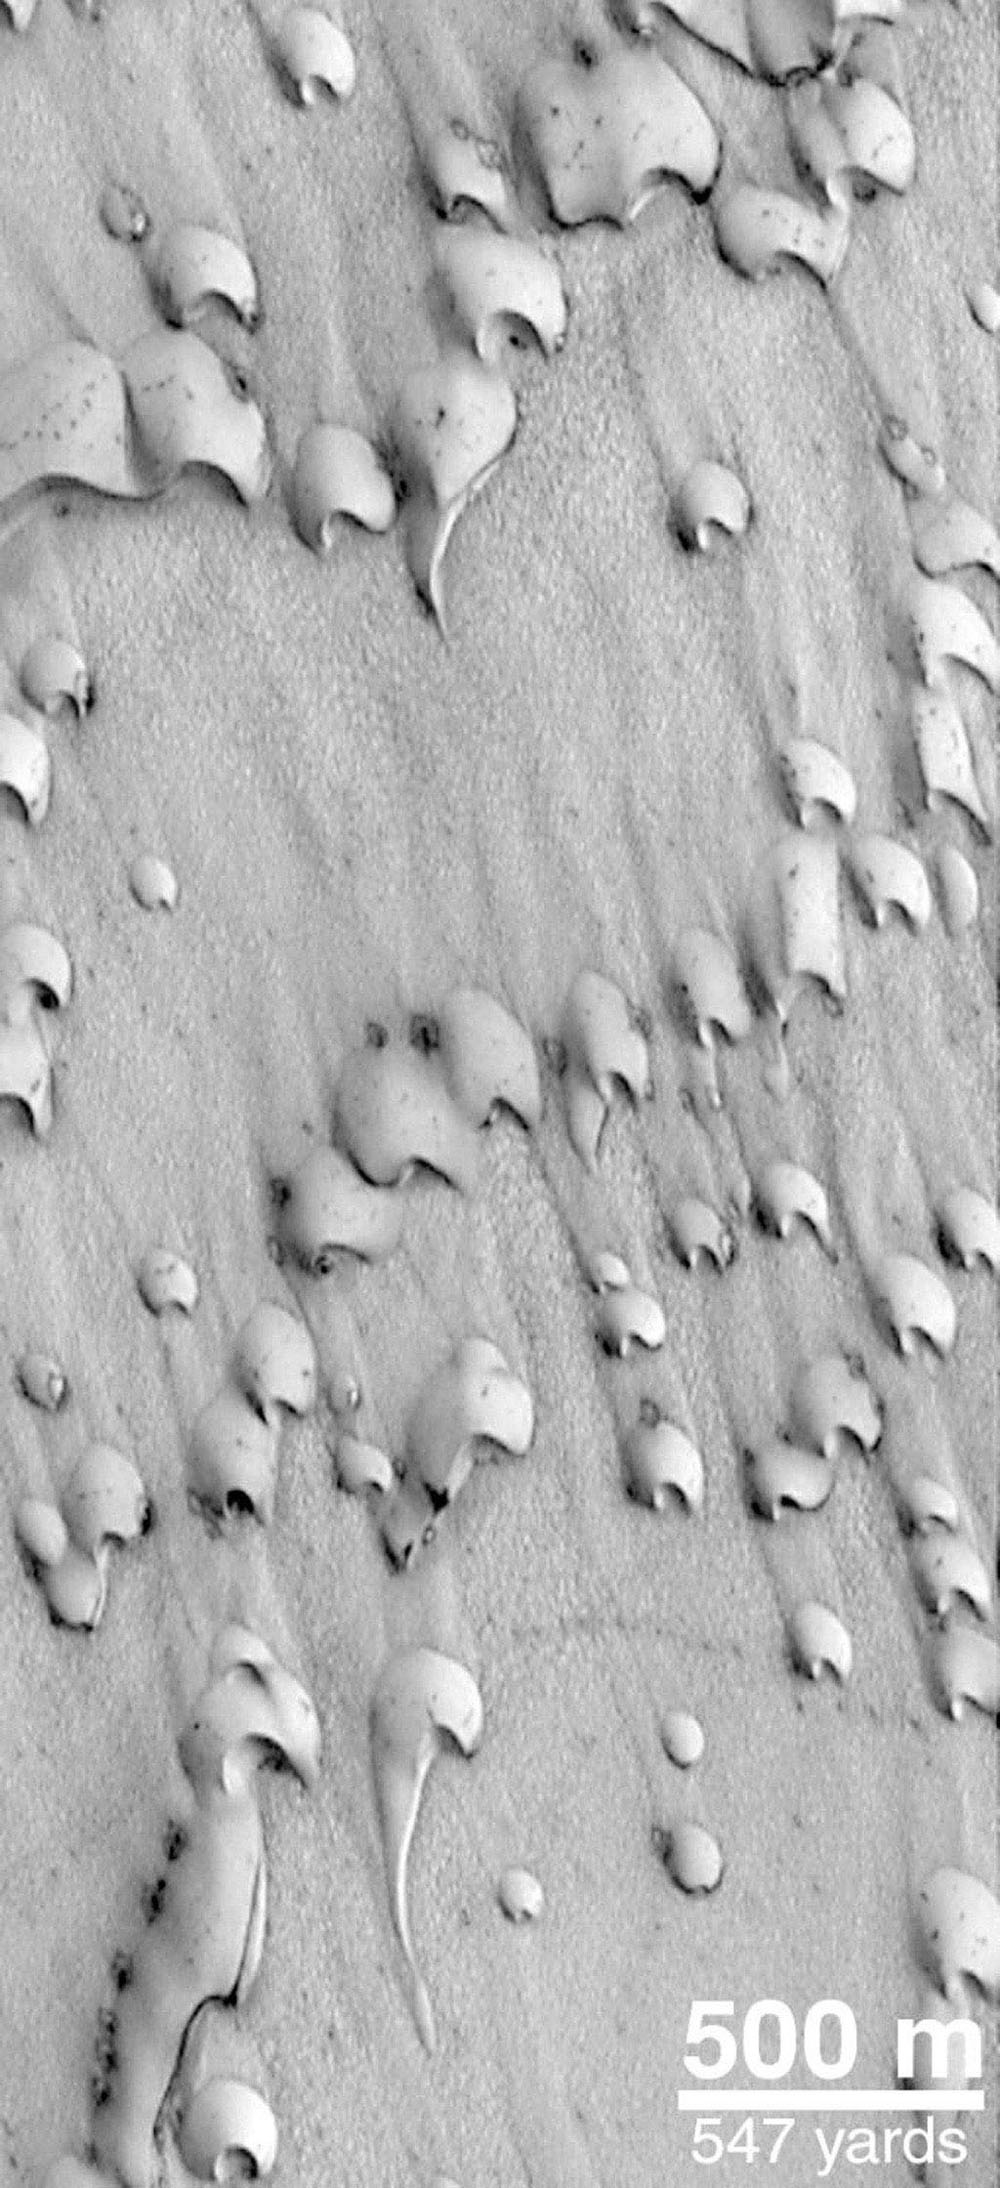 NASA's Mars Global Surveyor shows dunes in Chasma Boreale, a giant trough in the north polar cap. This September 1998 view shows dark sand emergent from beneath a veneer of bright frost left over from the northern winter that ended in July 1998.